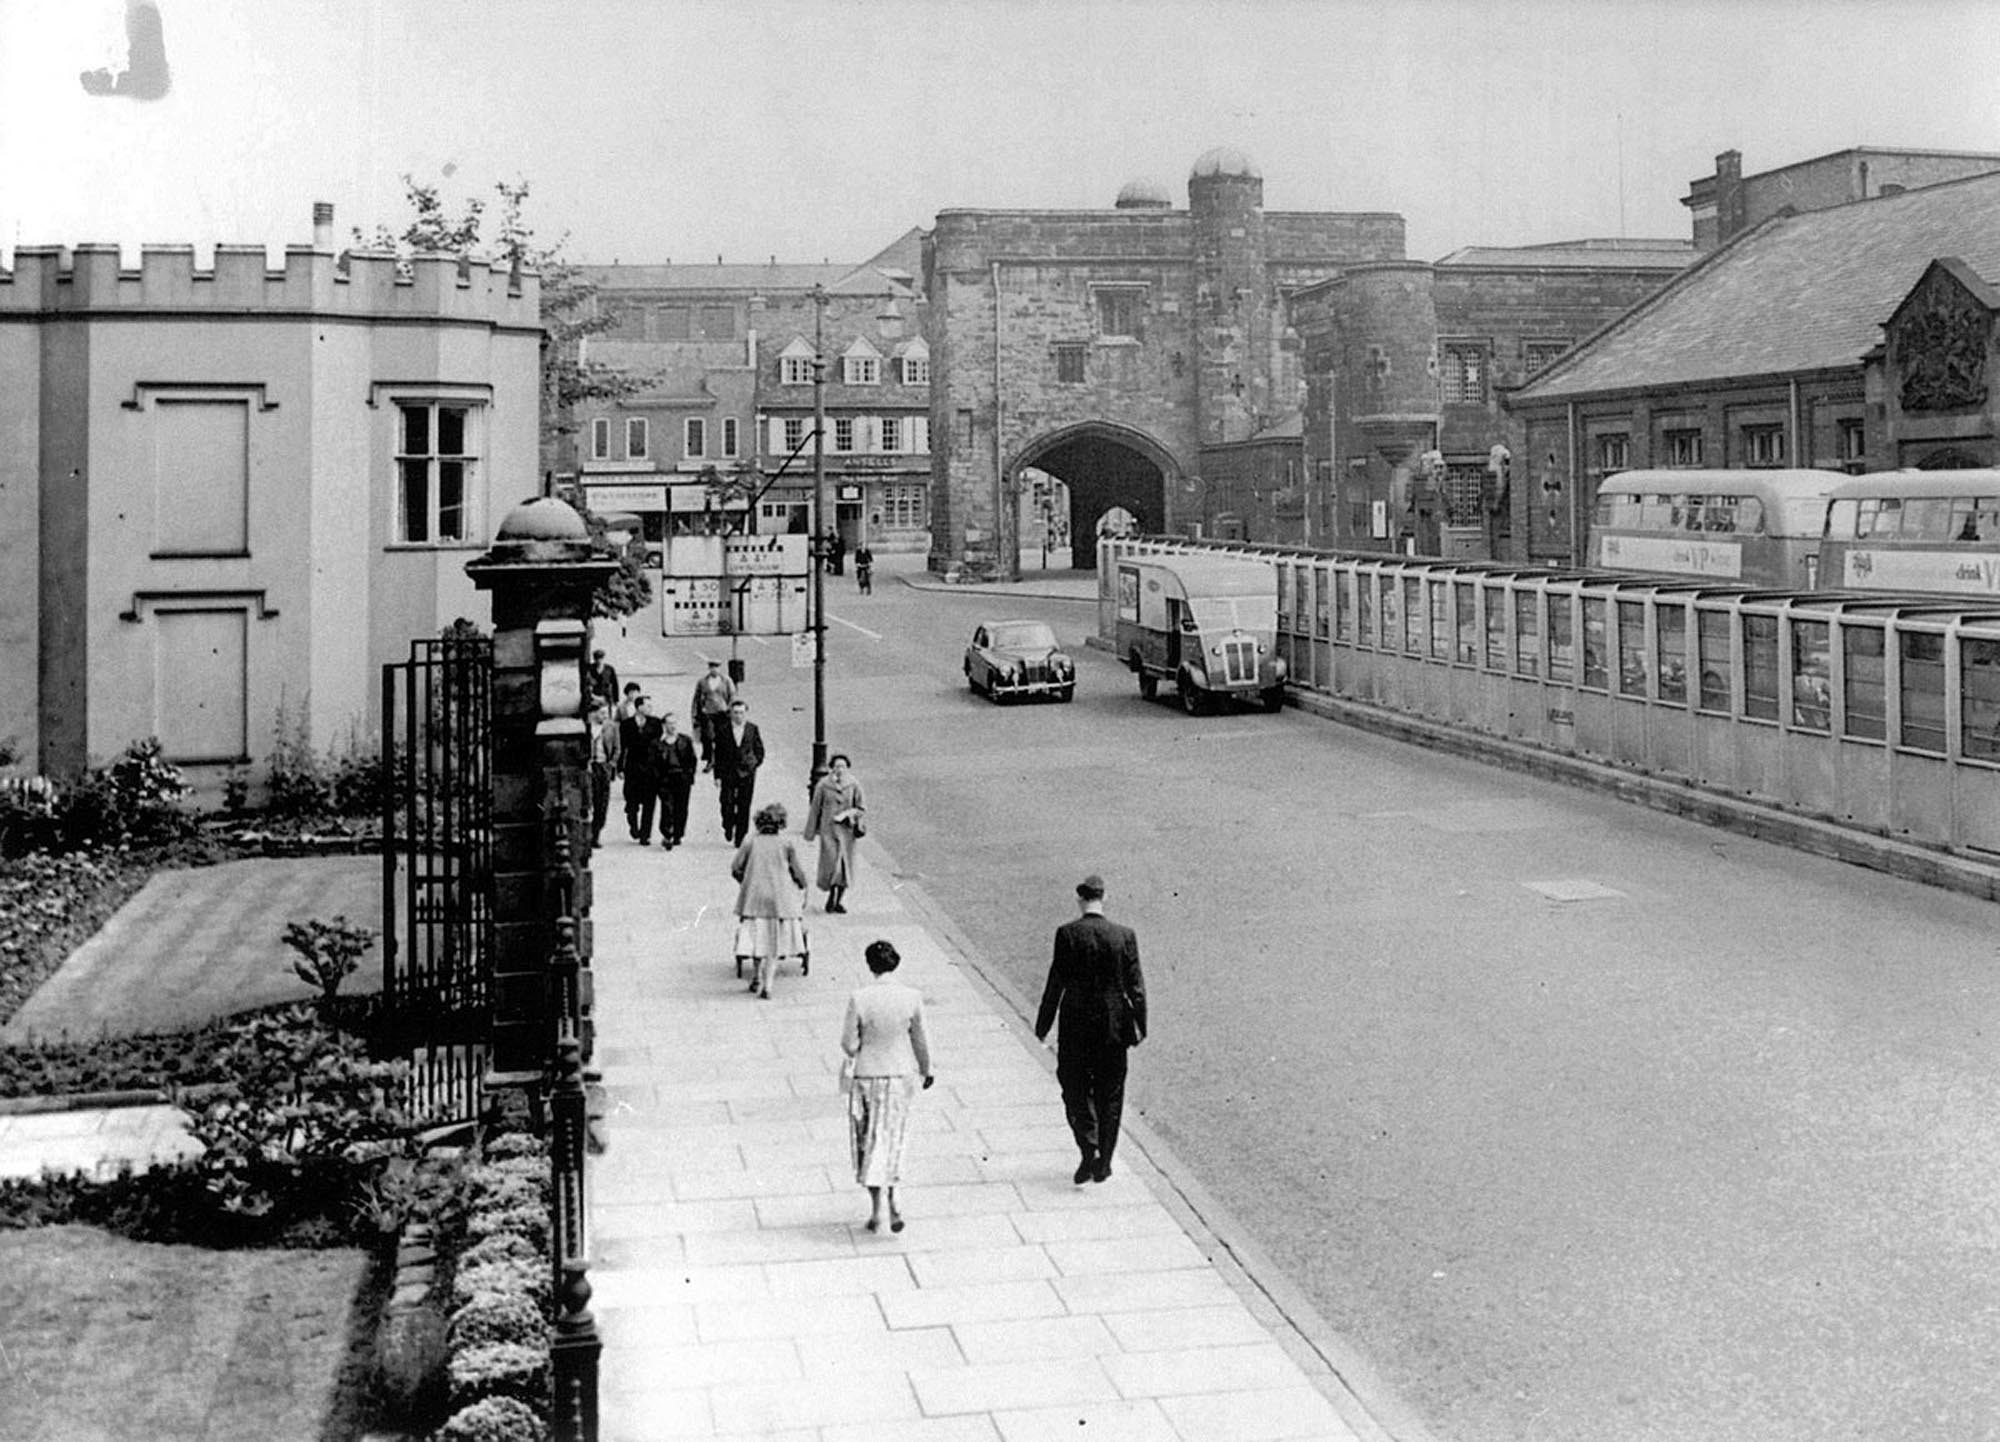 The Newarke looking towards The Magazine before 1963, when the militia barracks on the right were demolished - Leicestershire Record Office